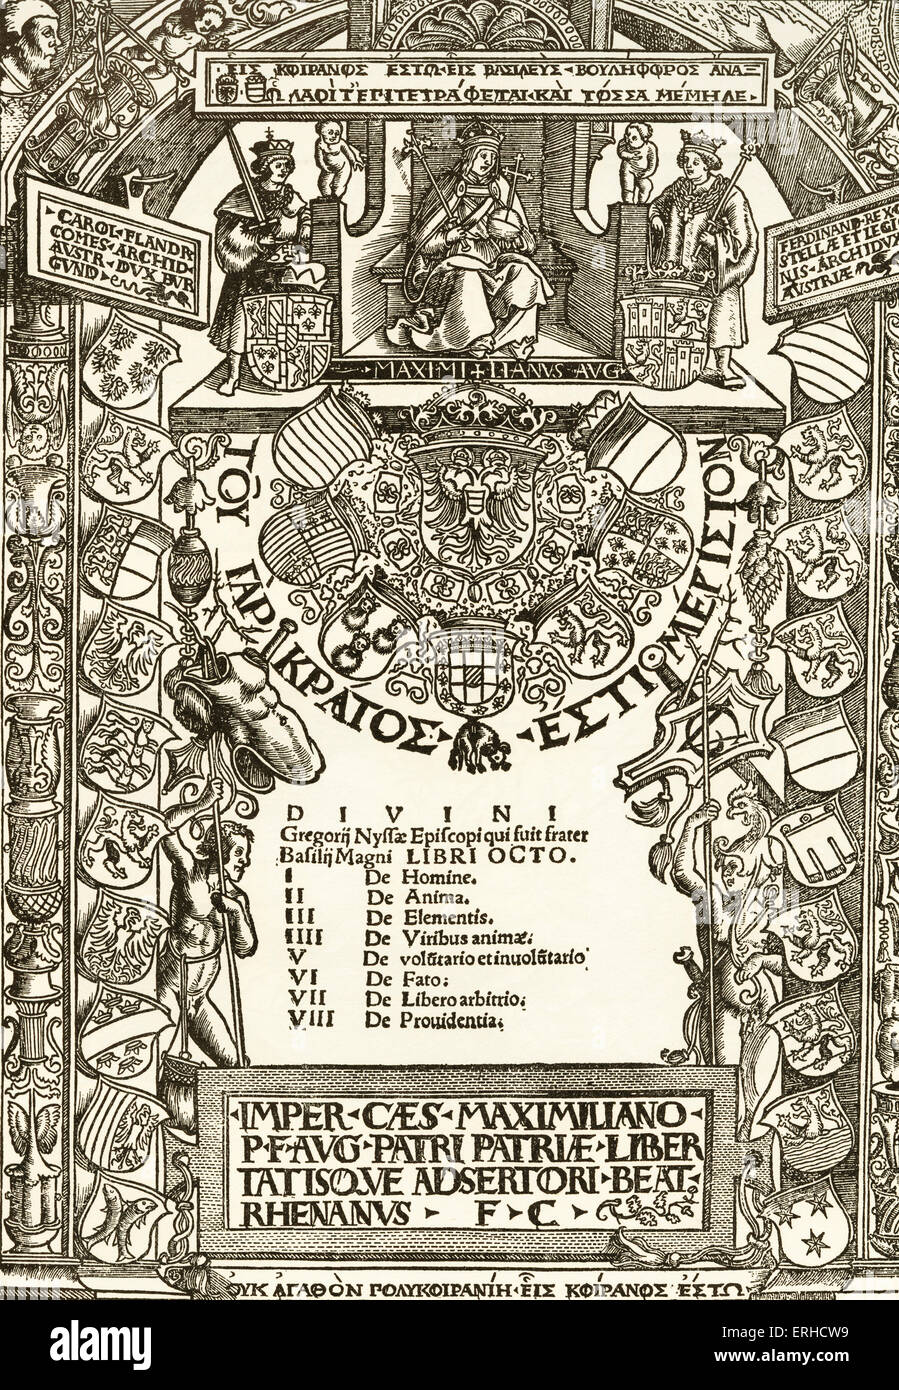 Emperor Maximilian Title Page, woodcut by Urs Graf, May 1512. Homage to Emperor Maximilian, enthroned top centre. - Stock Image